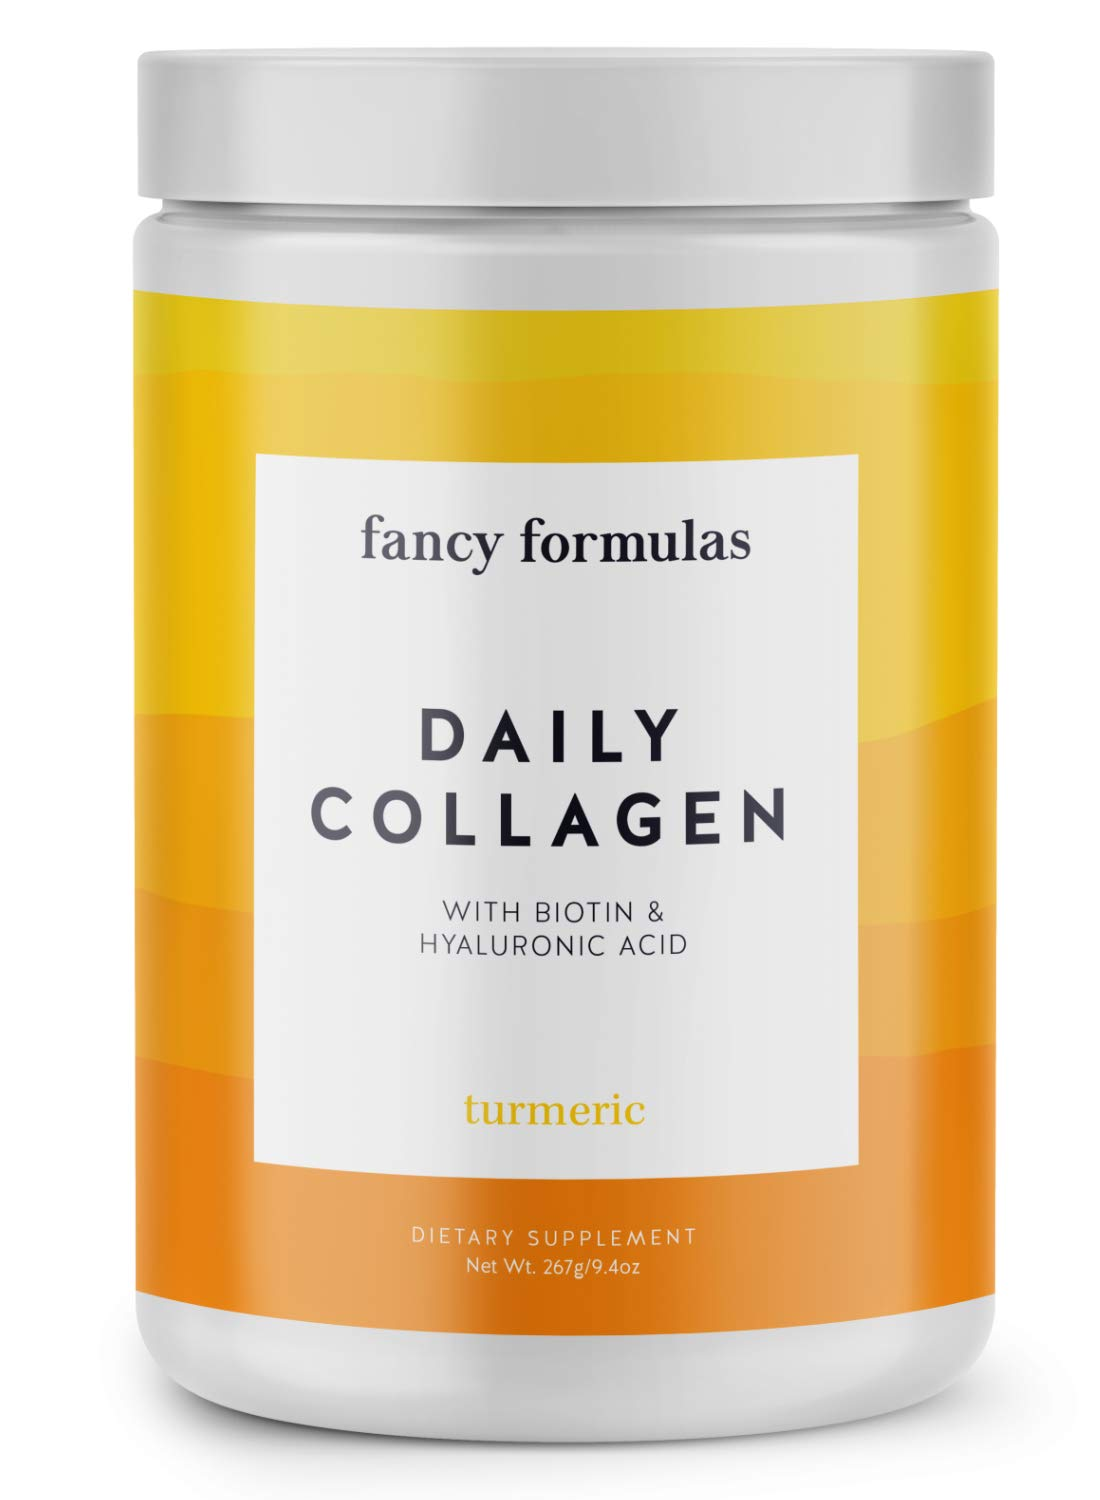 Fancy Formulas Daily Collagen Protein Powder: Grass-fed Collagen Peptides with Biotin, Hyaluronic...